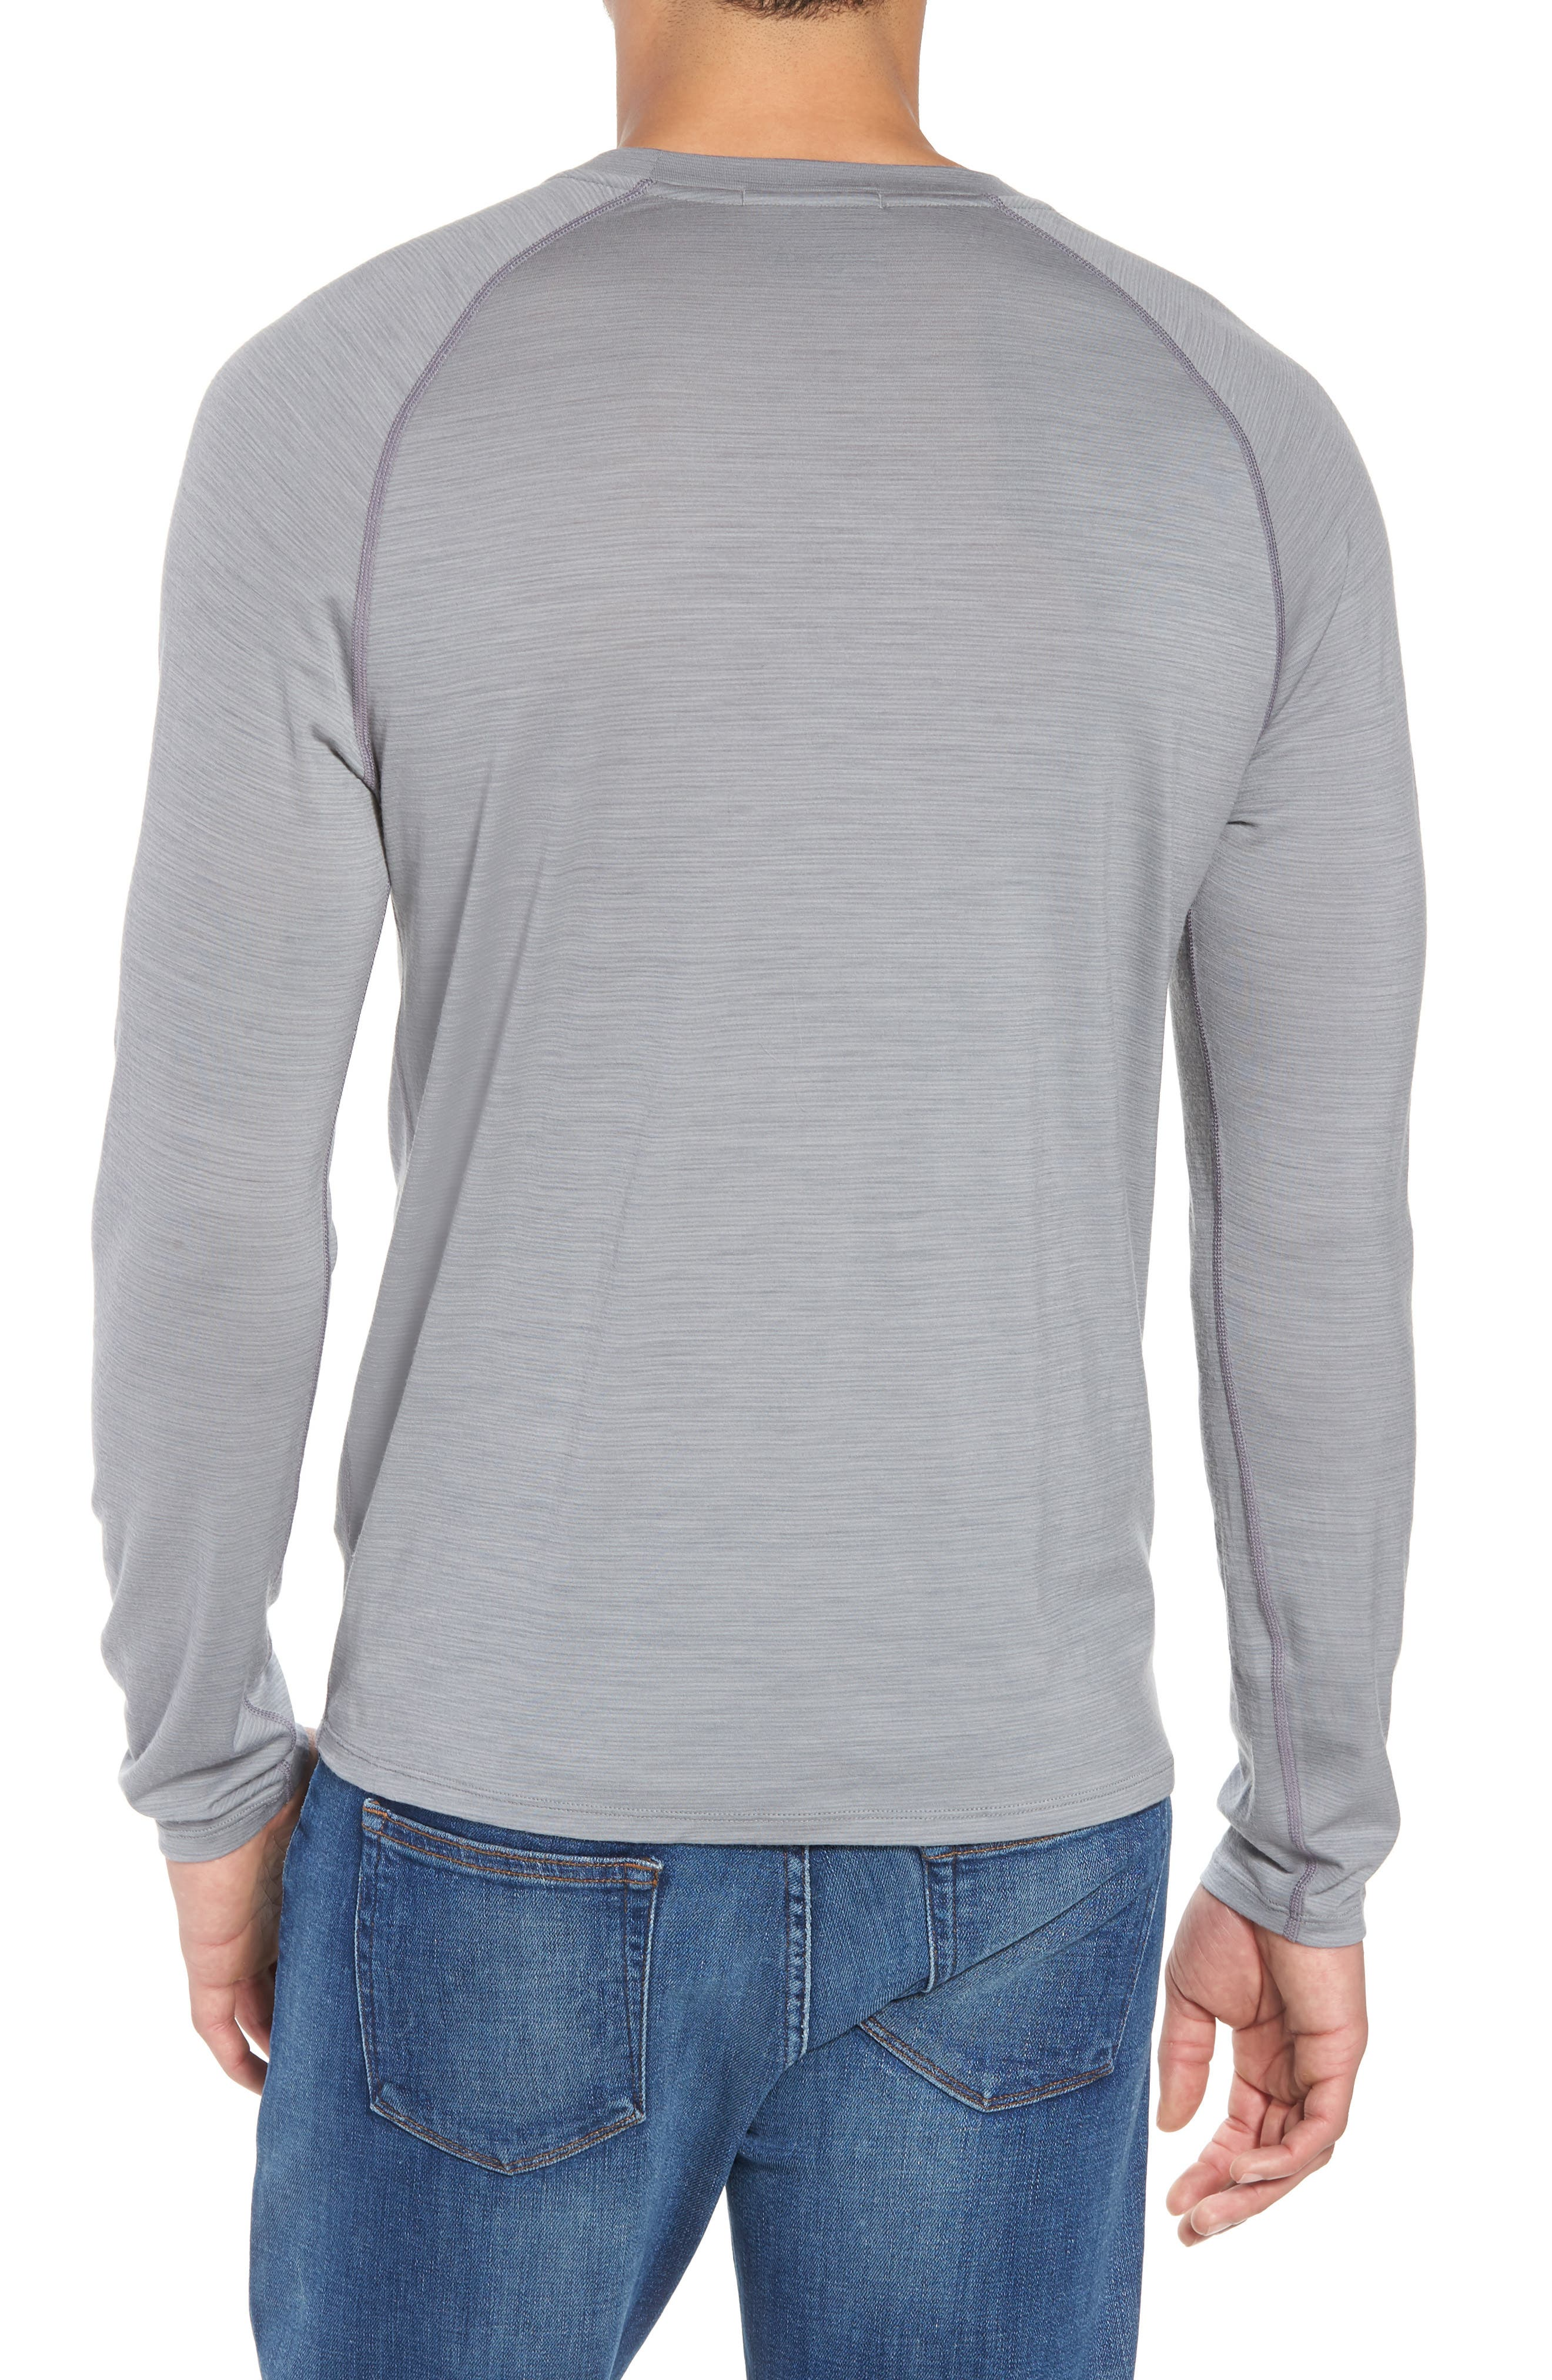 SMARTWOOL,                             Merino 150 Wool Blend Long Sleeve T-Shirt,                             Alternate thumbnail 2, color,                             LIGHT GREY